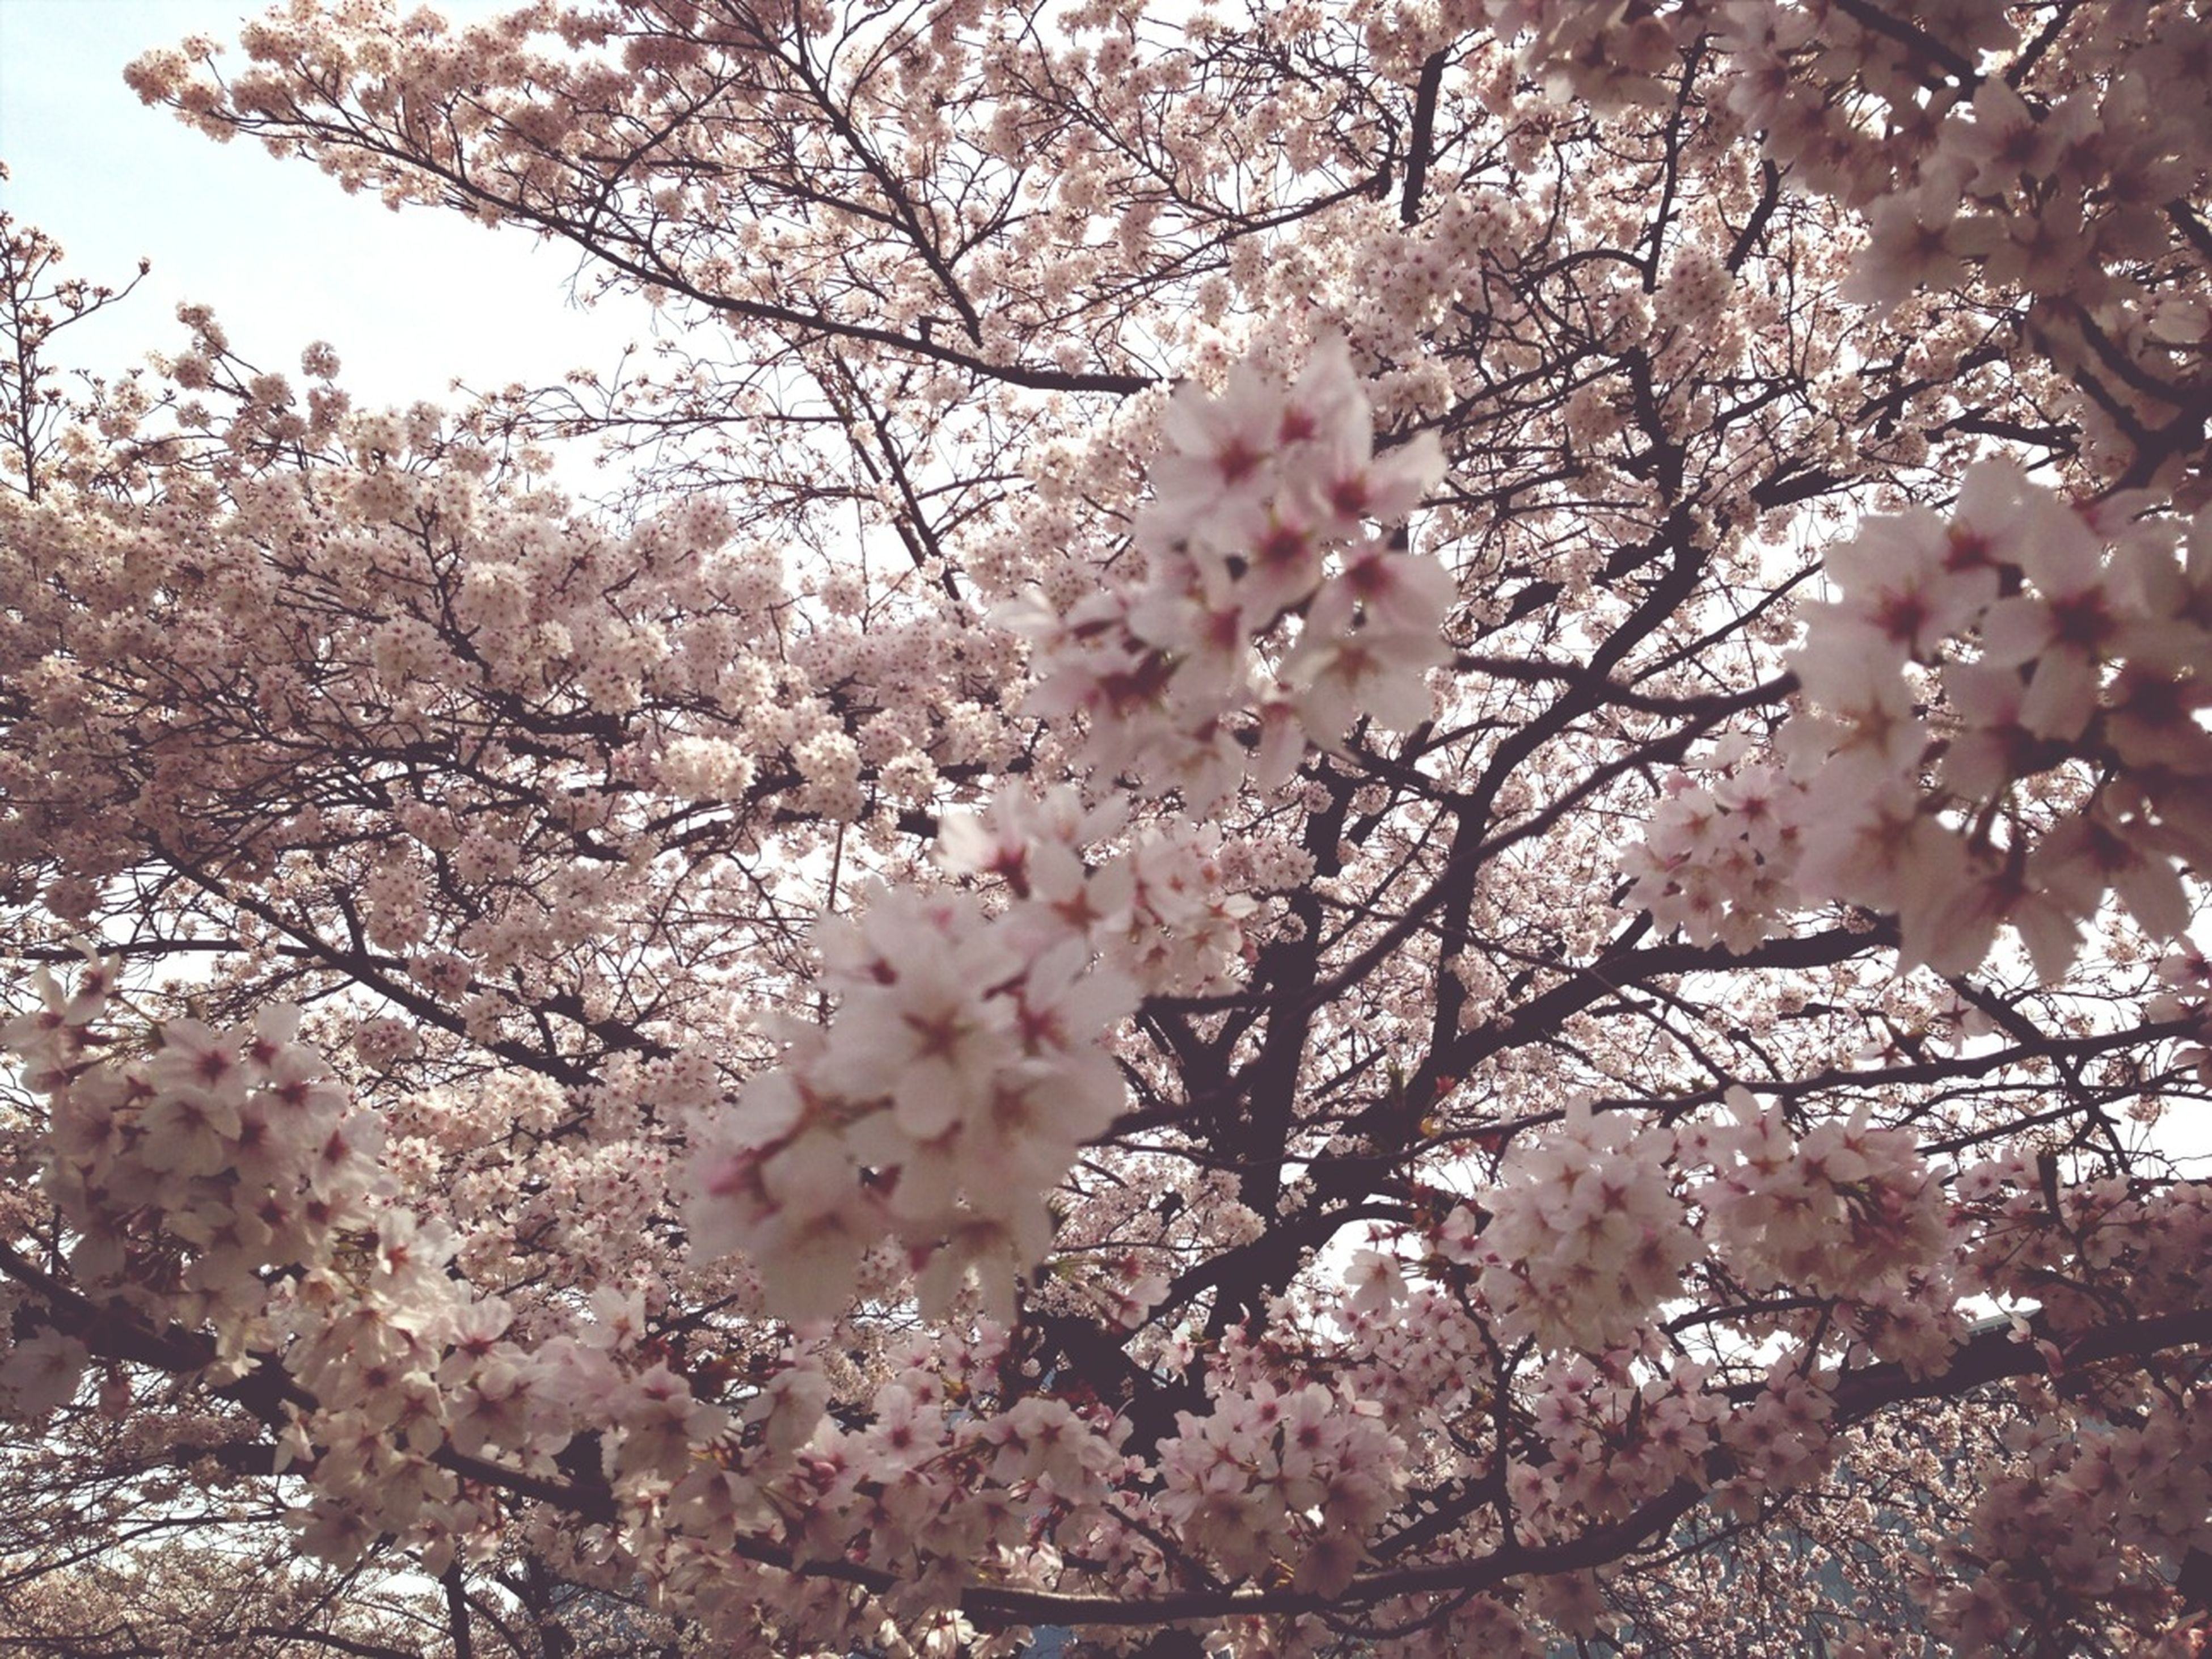 flower, tree, branch, freshness, growth, cherry blossom, cherry tree, beauty in nature, blossom, fragility, low angle view, pink color, nature, springtime, in bloom, fruit tree, blooming, petal, day, outdoors